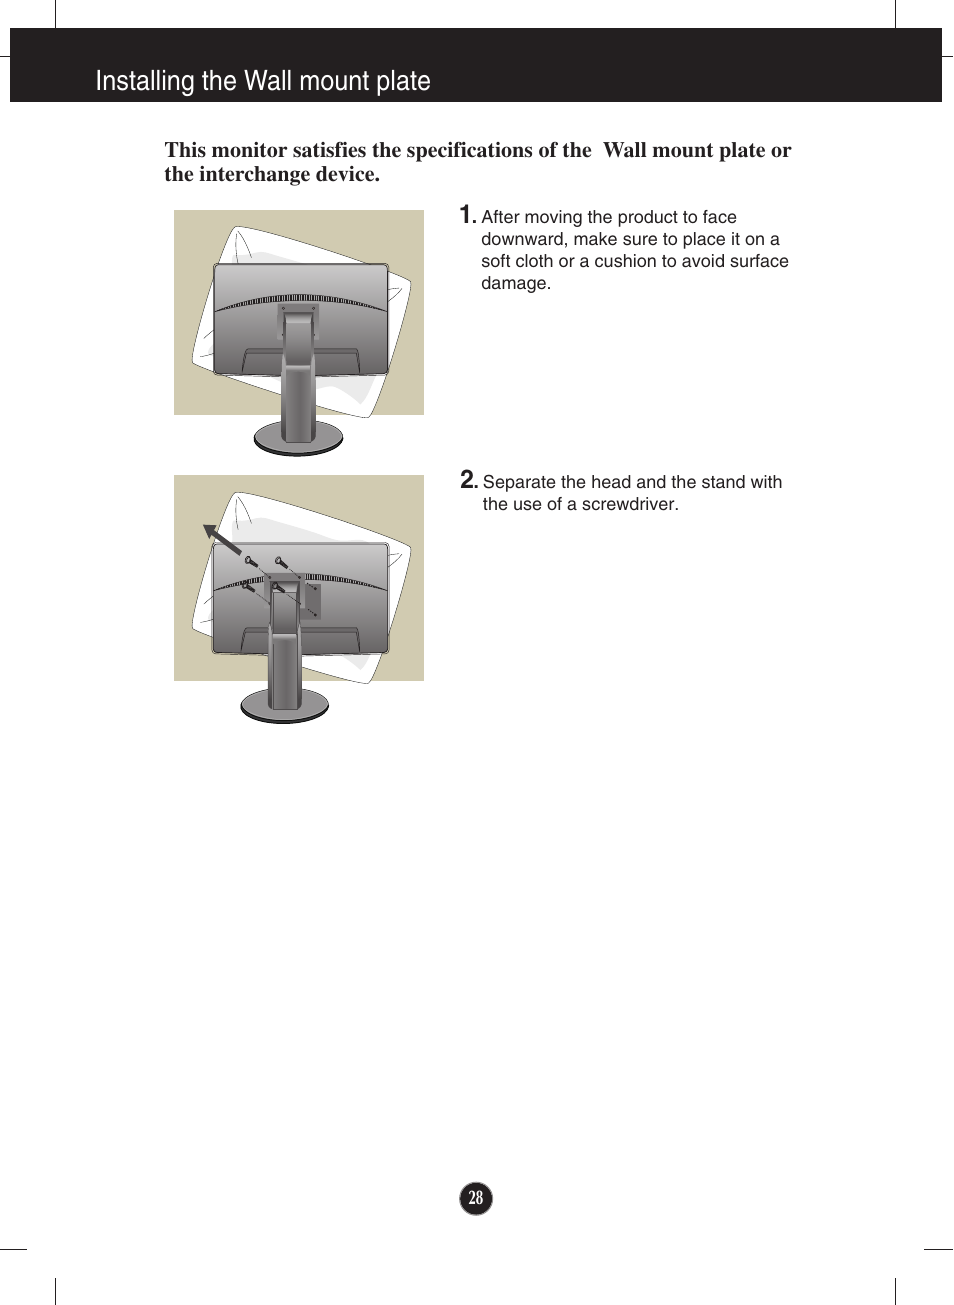 Installing the wall mount plate | LG lcd monitor ips231p User Manual | Page 29 / 31